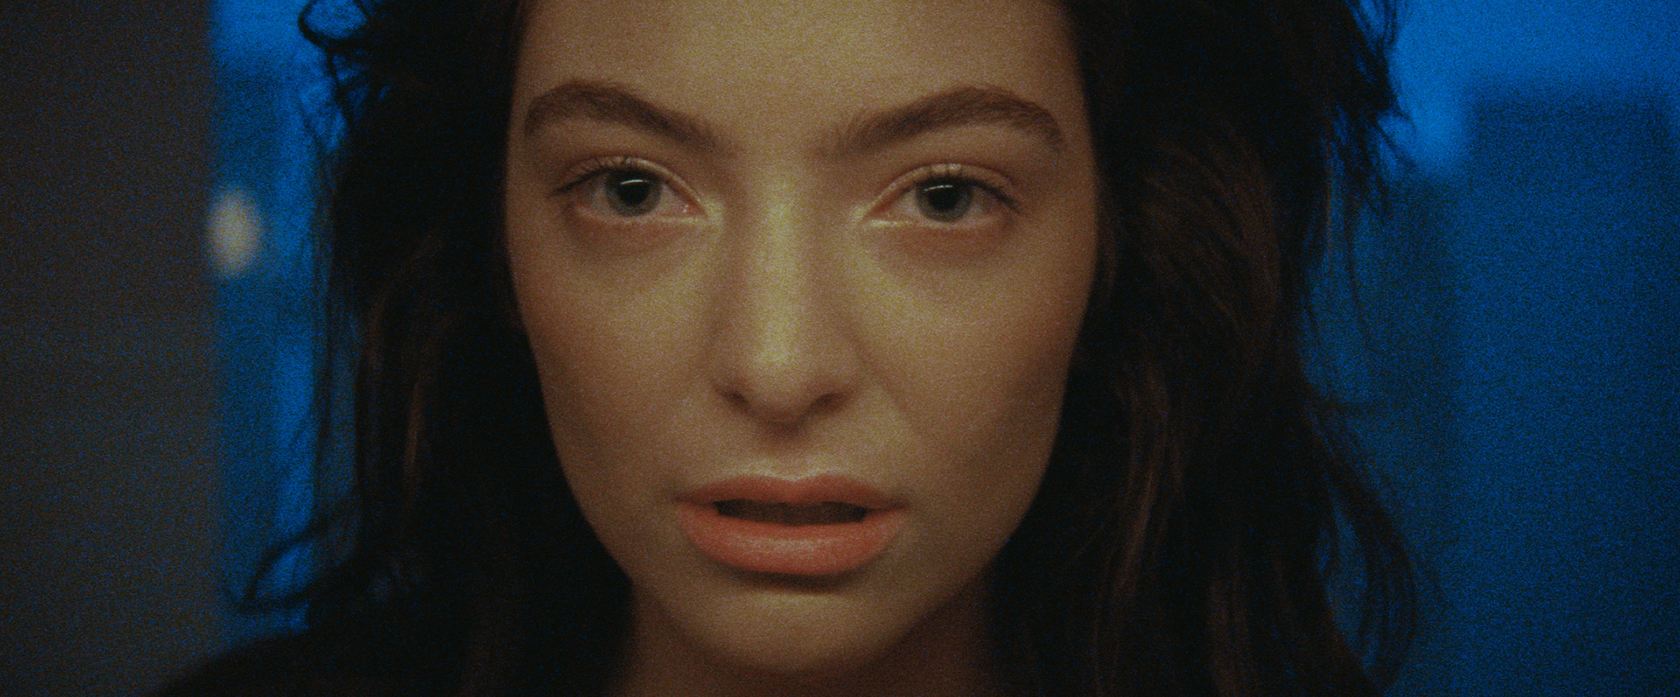 "Lorde ""Green Light"" by Grant Singer"